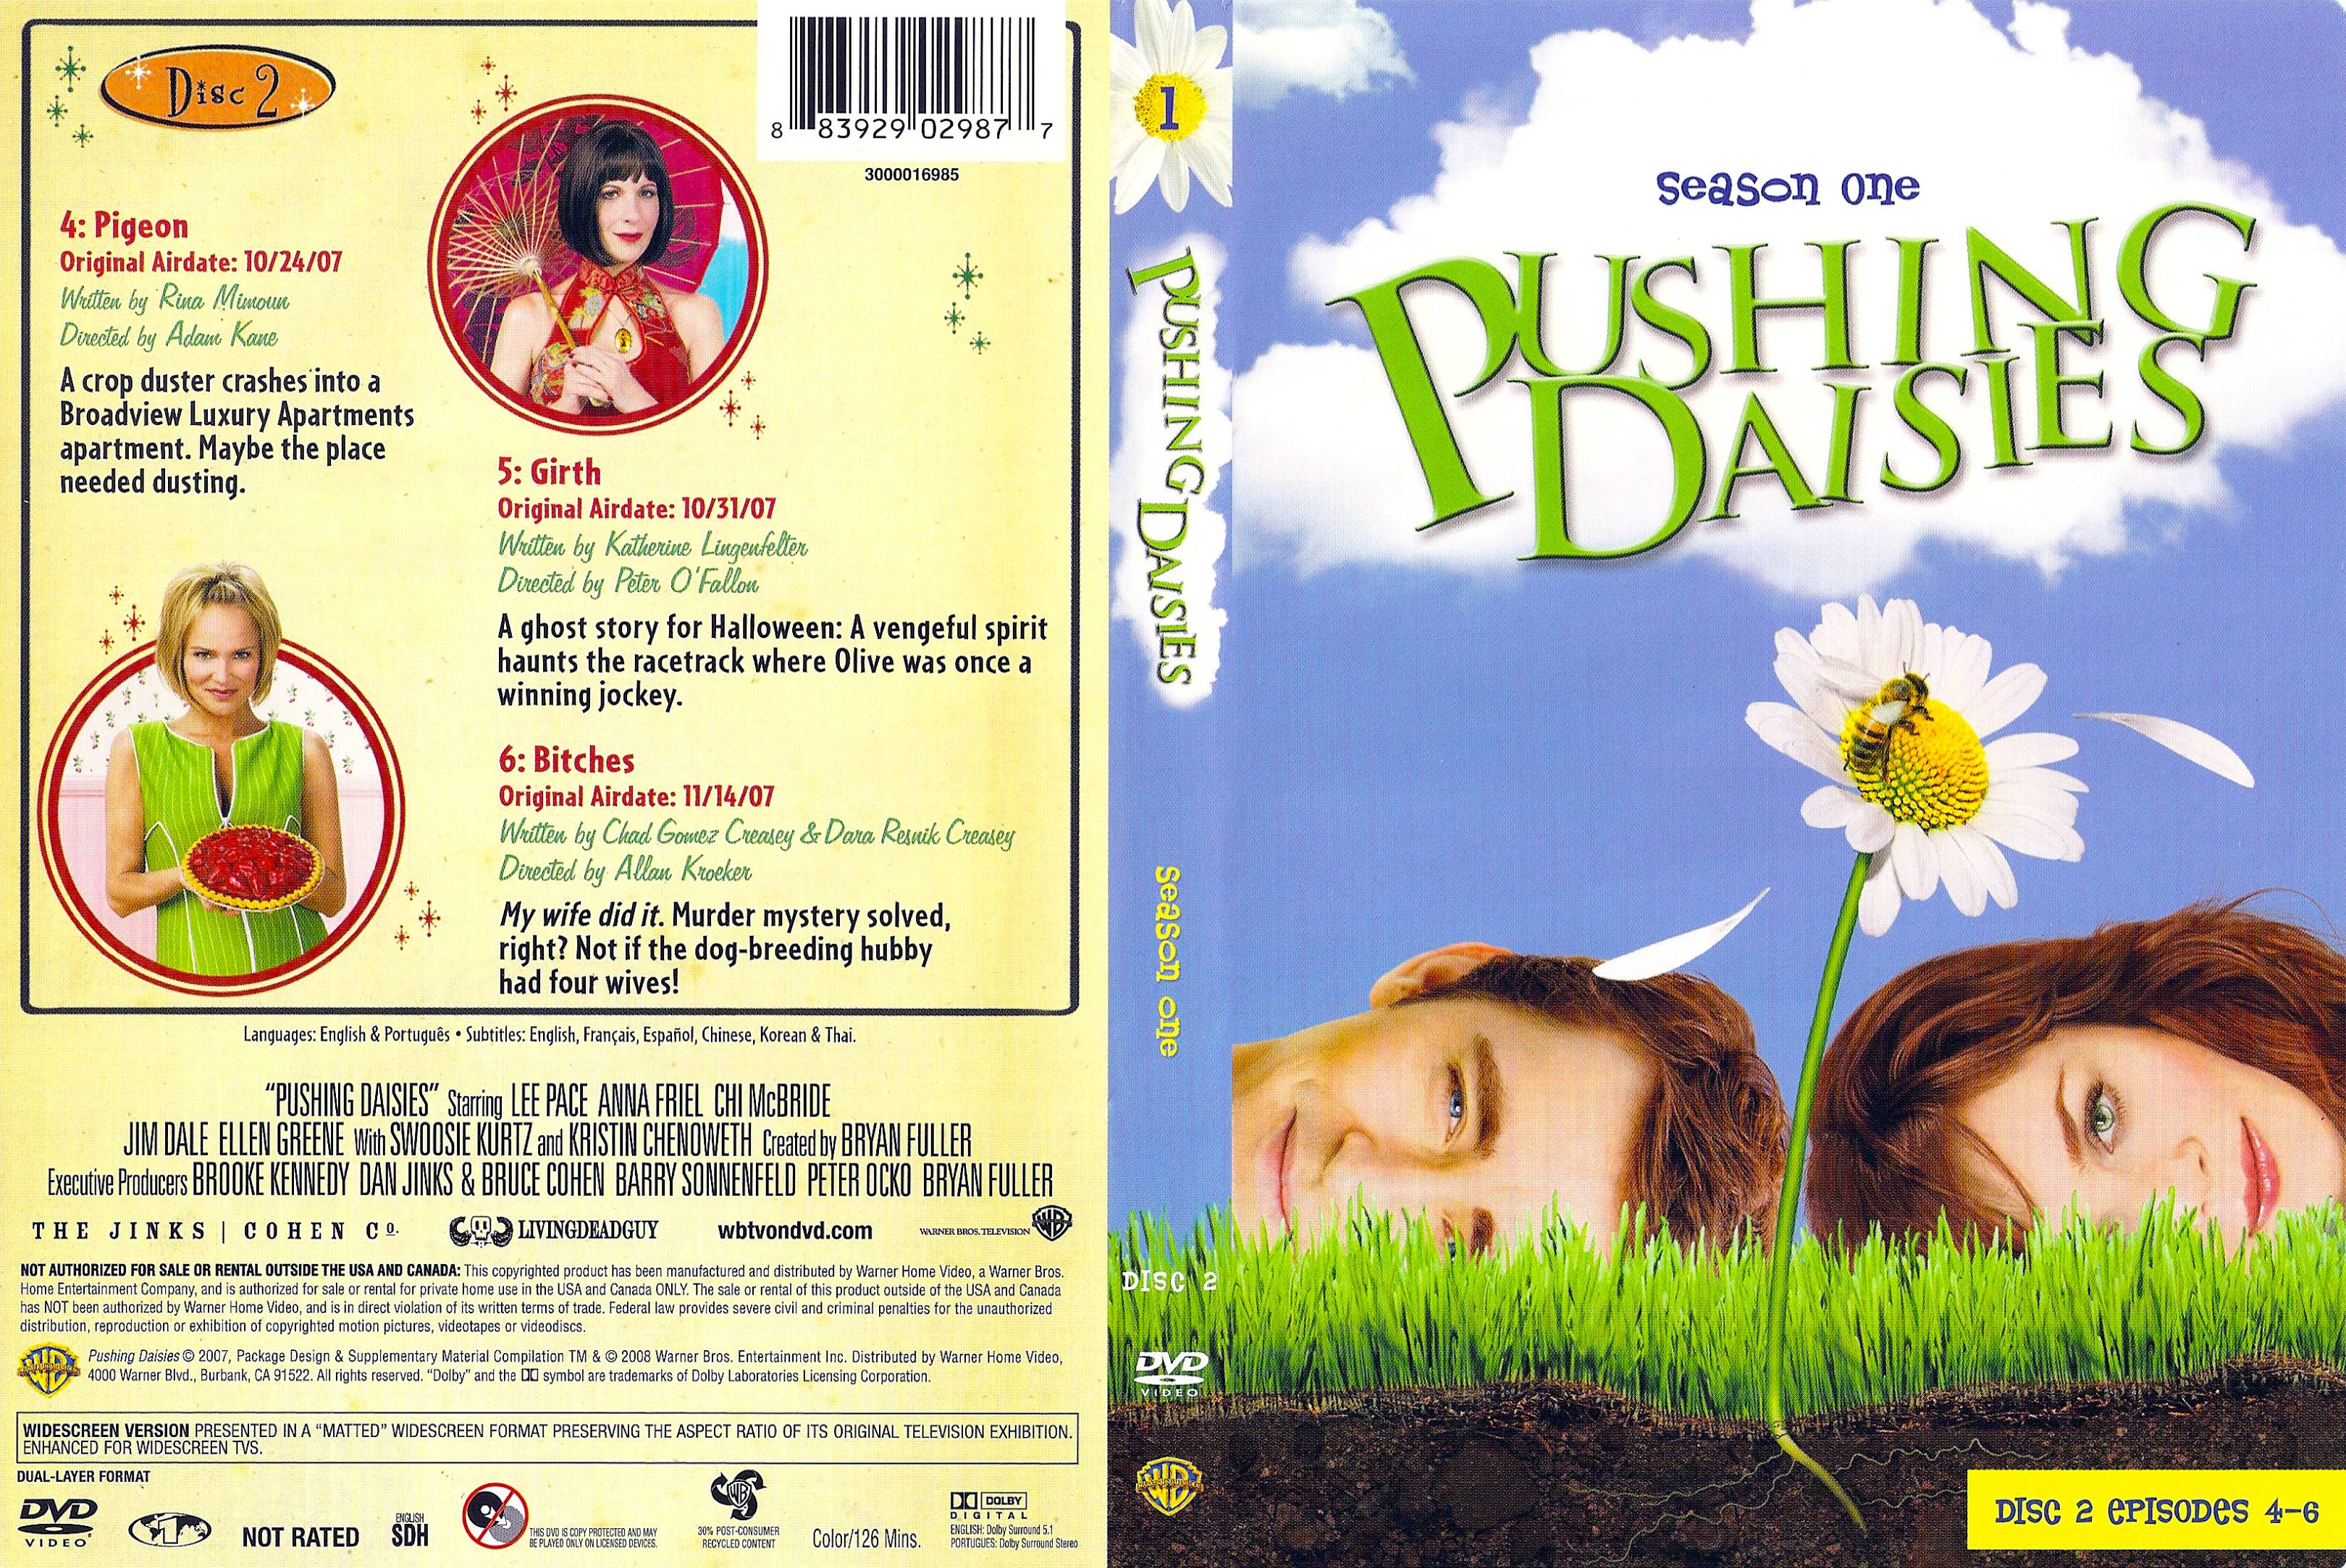 Pushing daisies: season 1 rotten tomatoes.